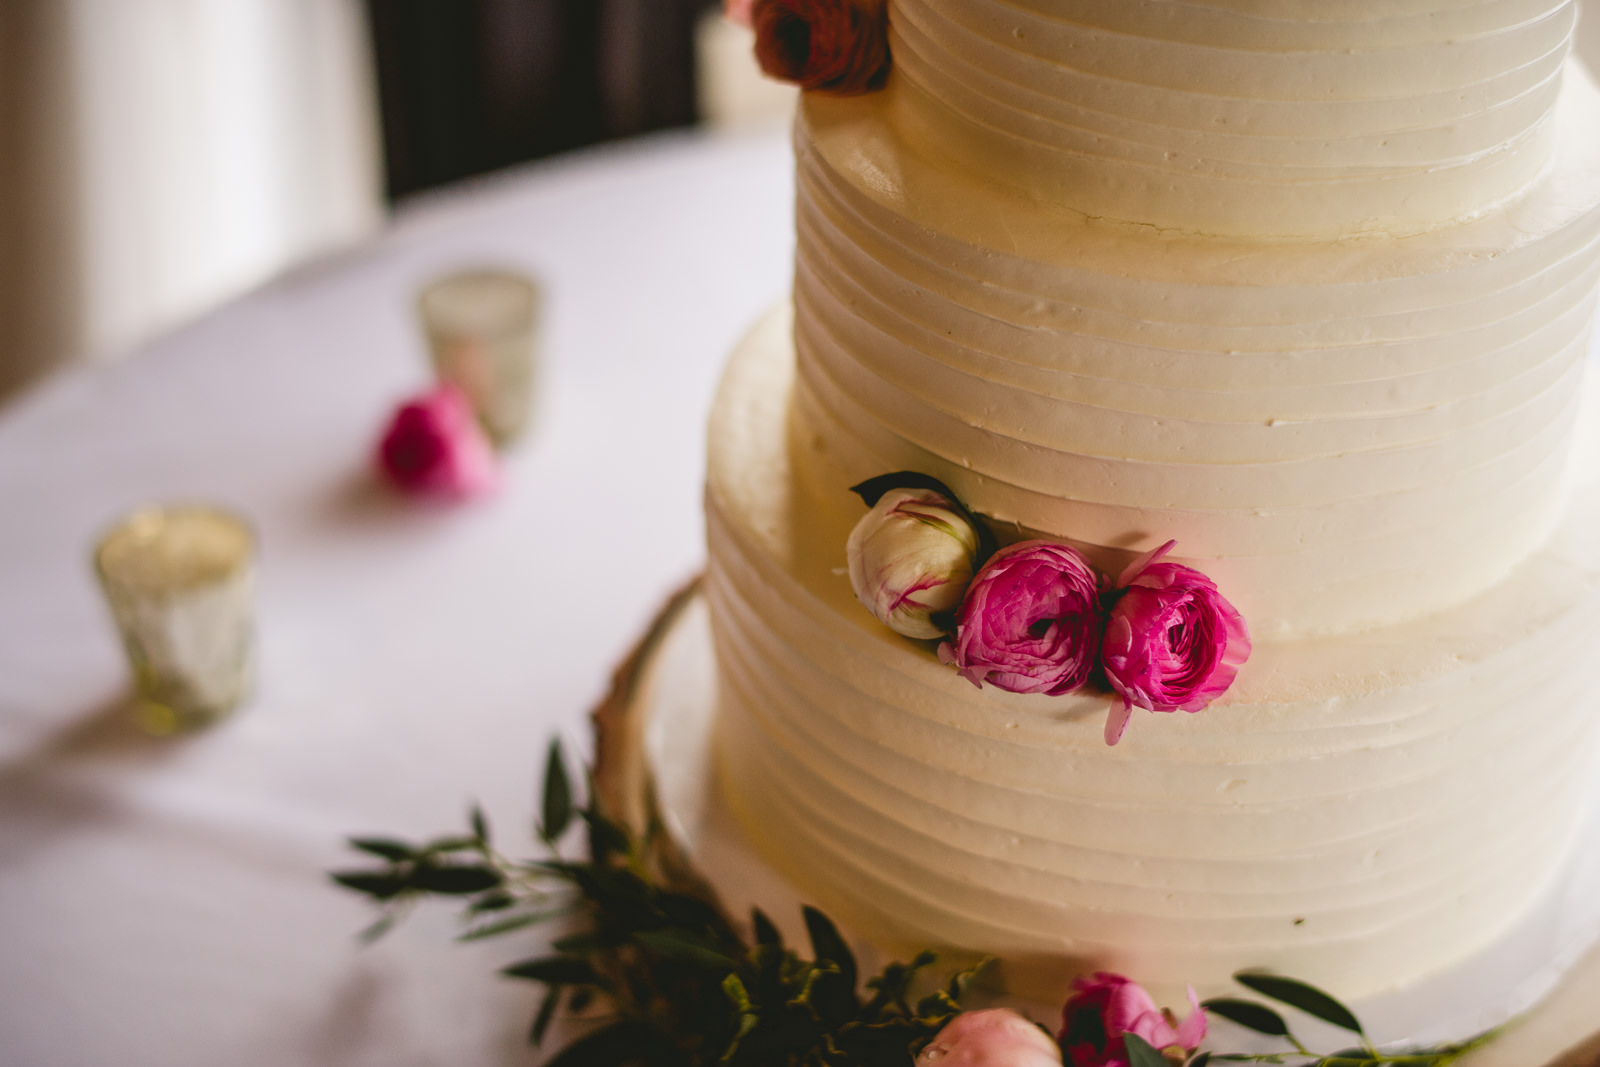 49 club of hillbrook wedding cake - Club of Hillbrook Wedding // Jenna + Ben